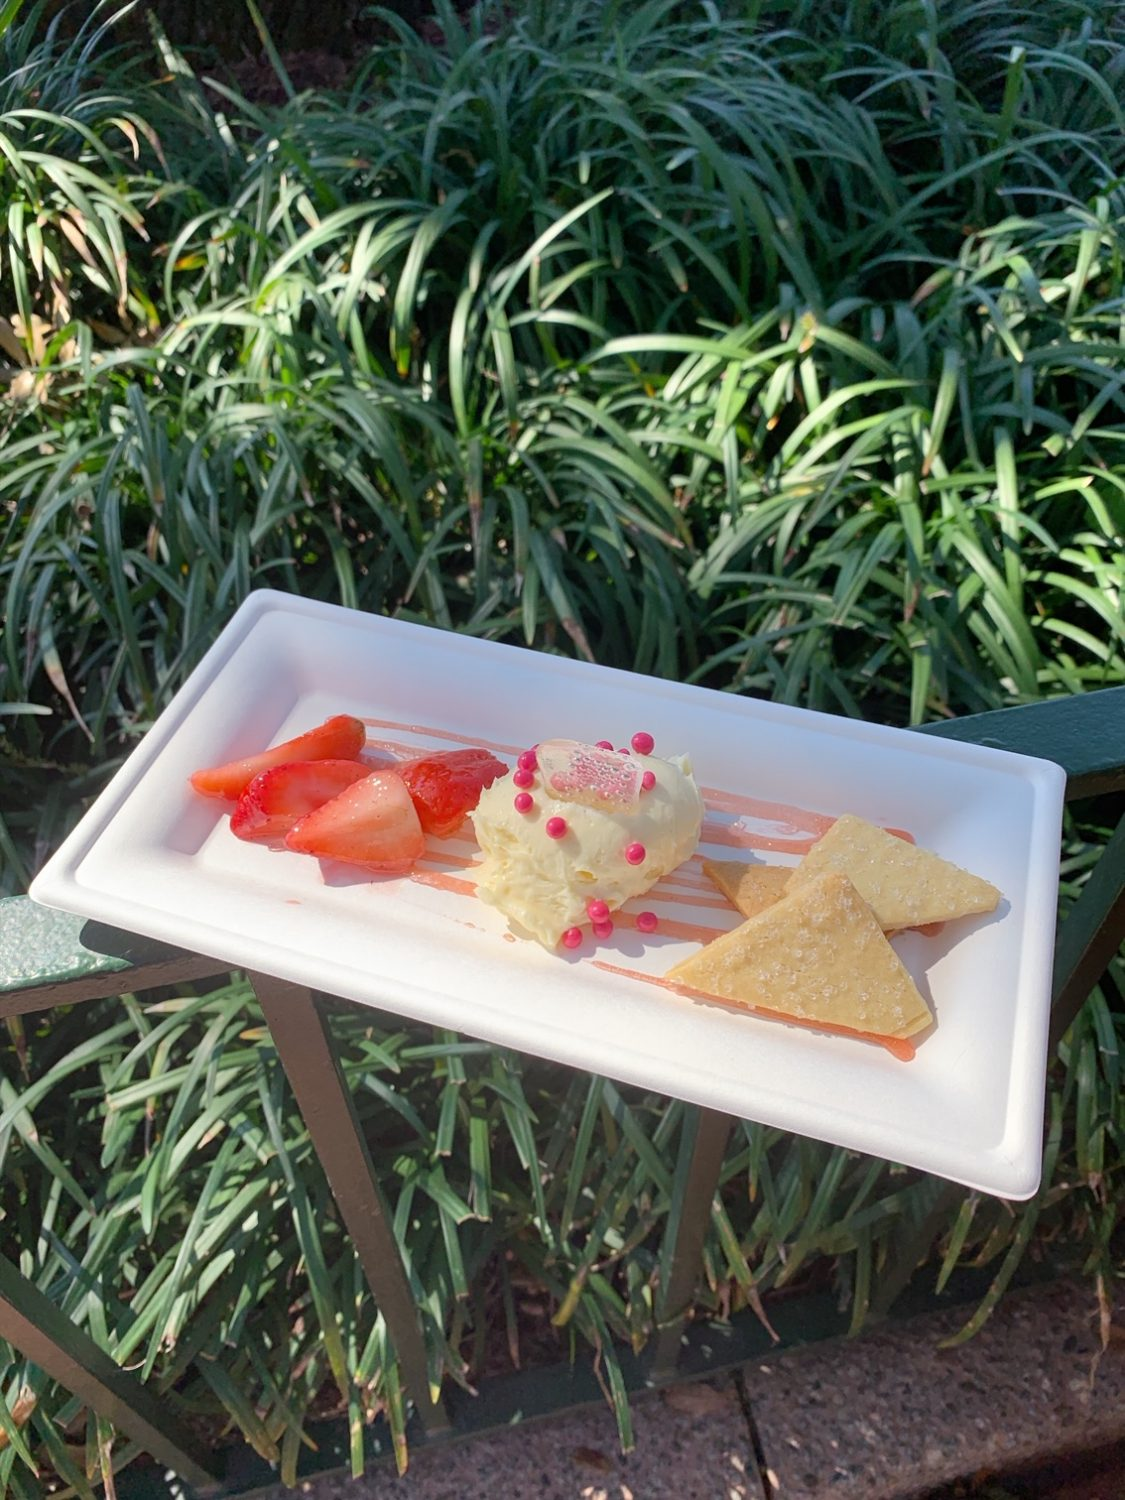 Epcot International Festival of the Arts Deconstructed Strawberry Cheesecake